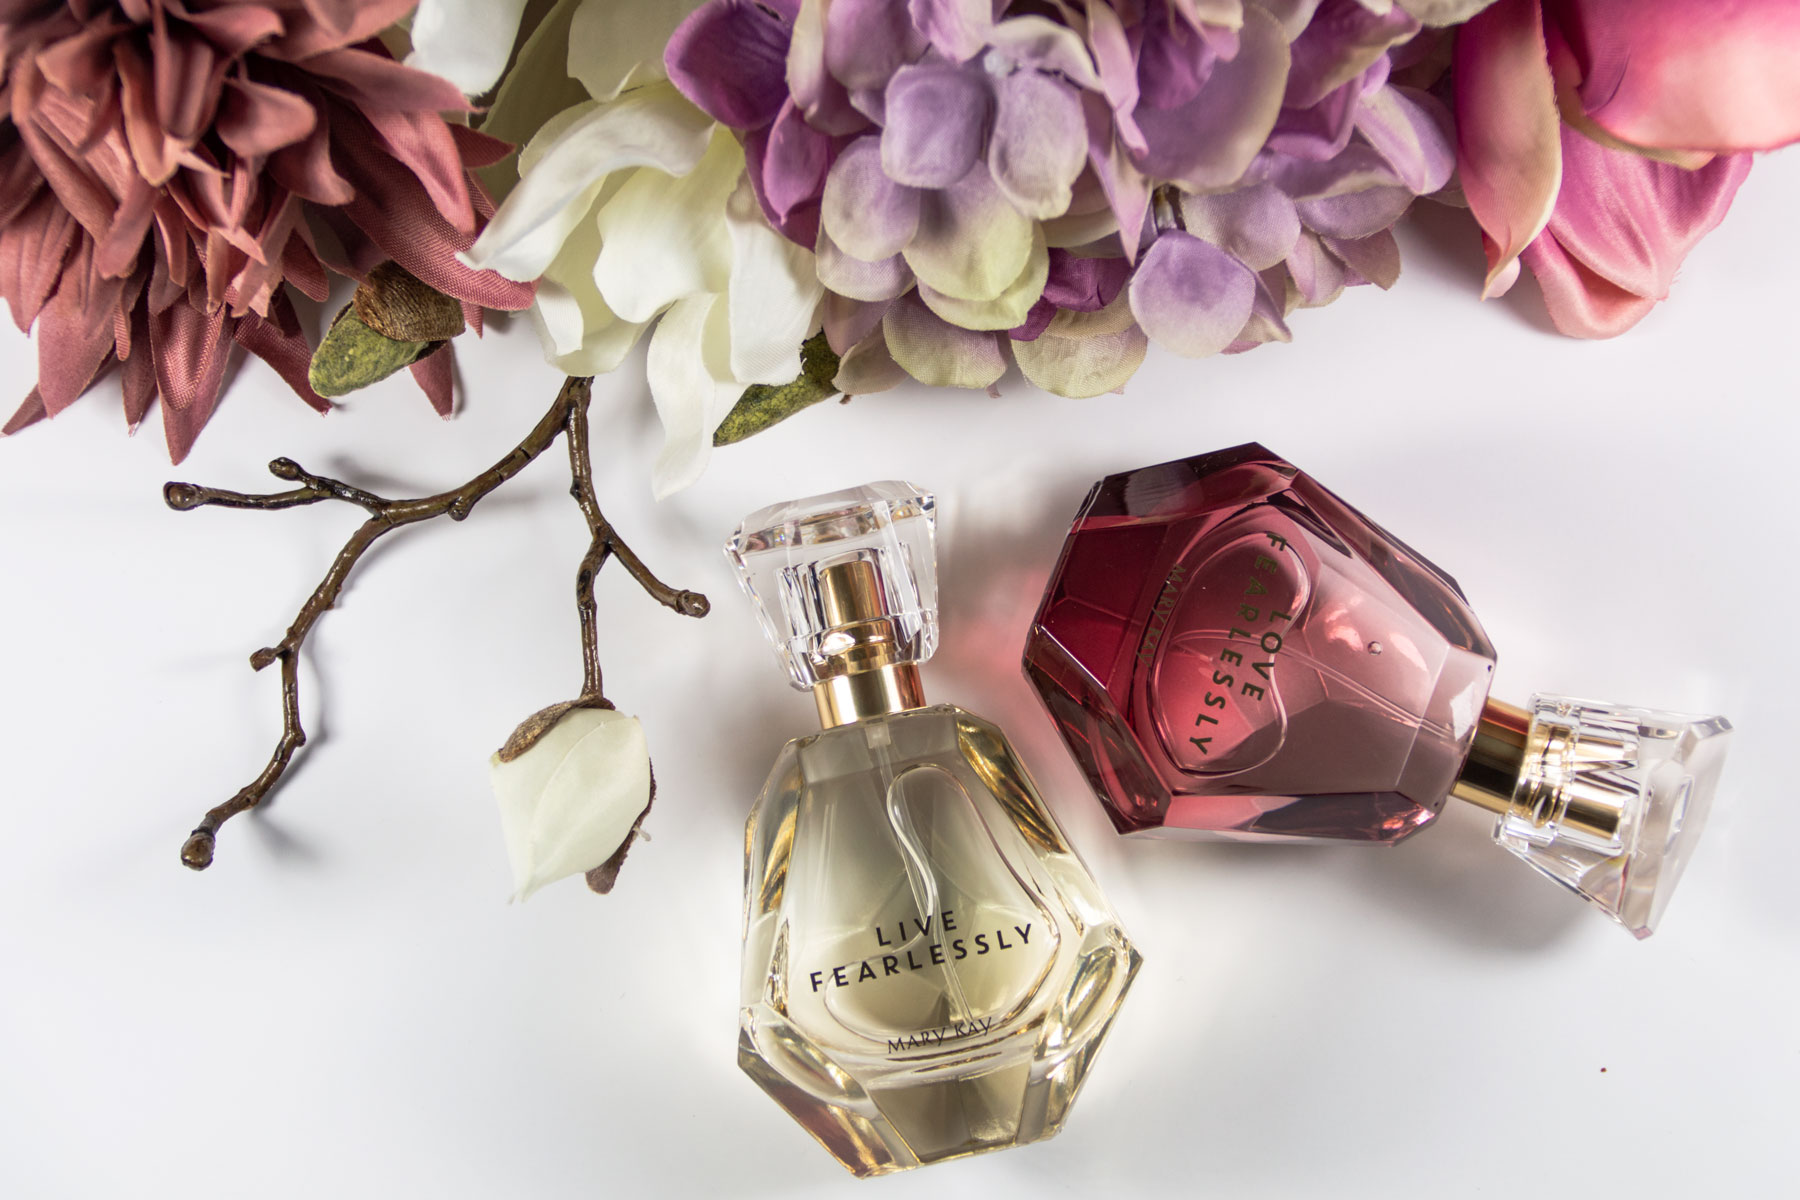 Mary Kay Live Fearlessly Love Fearlessly